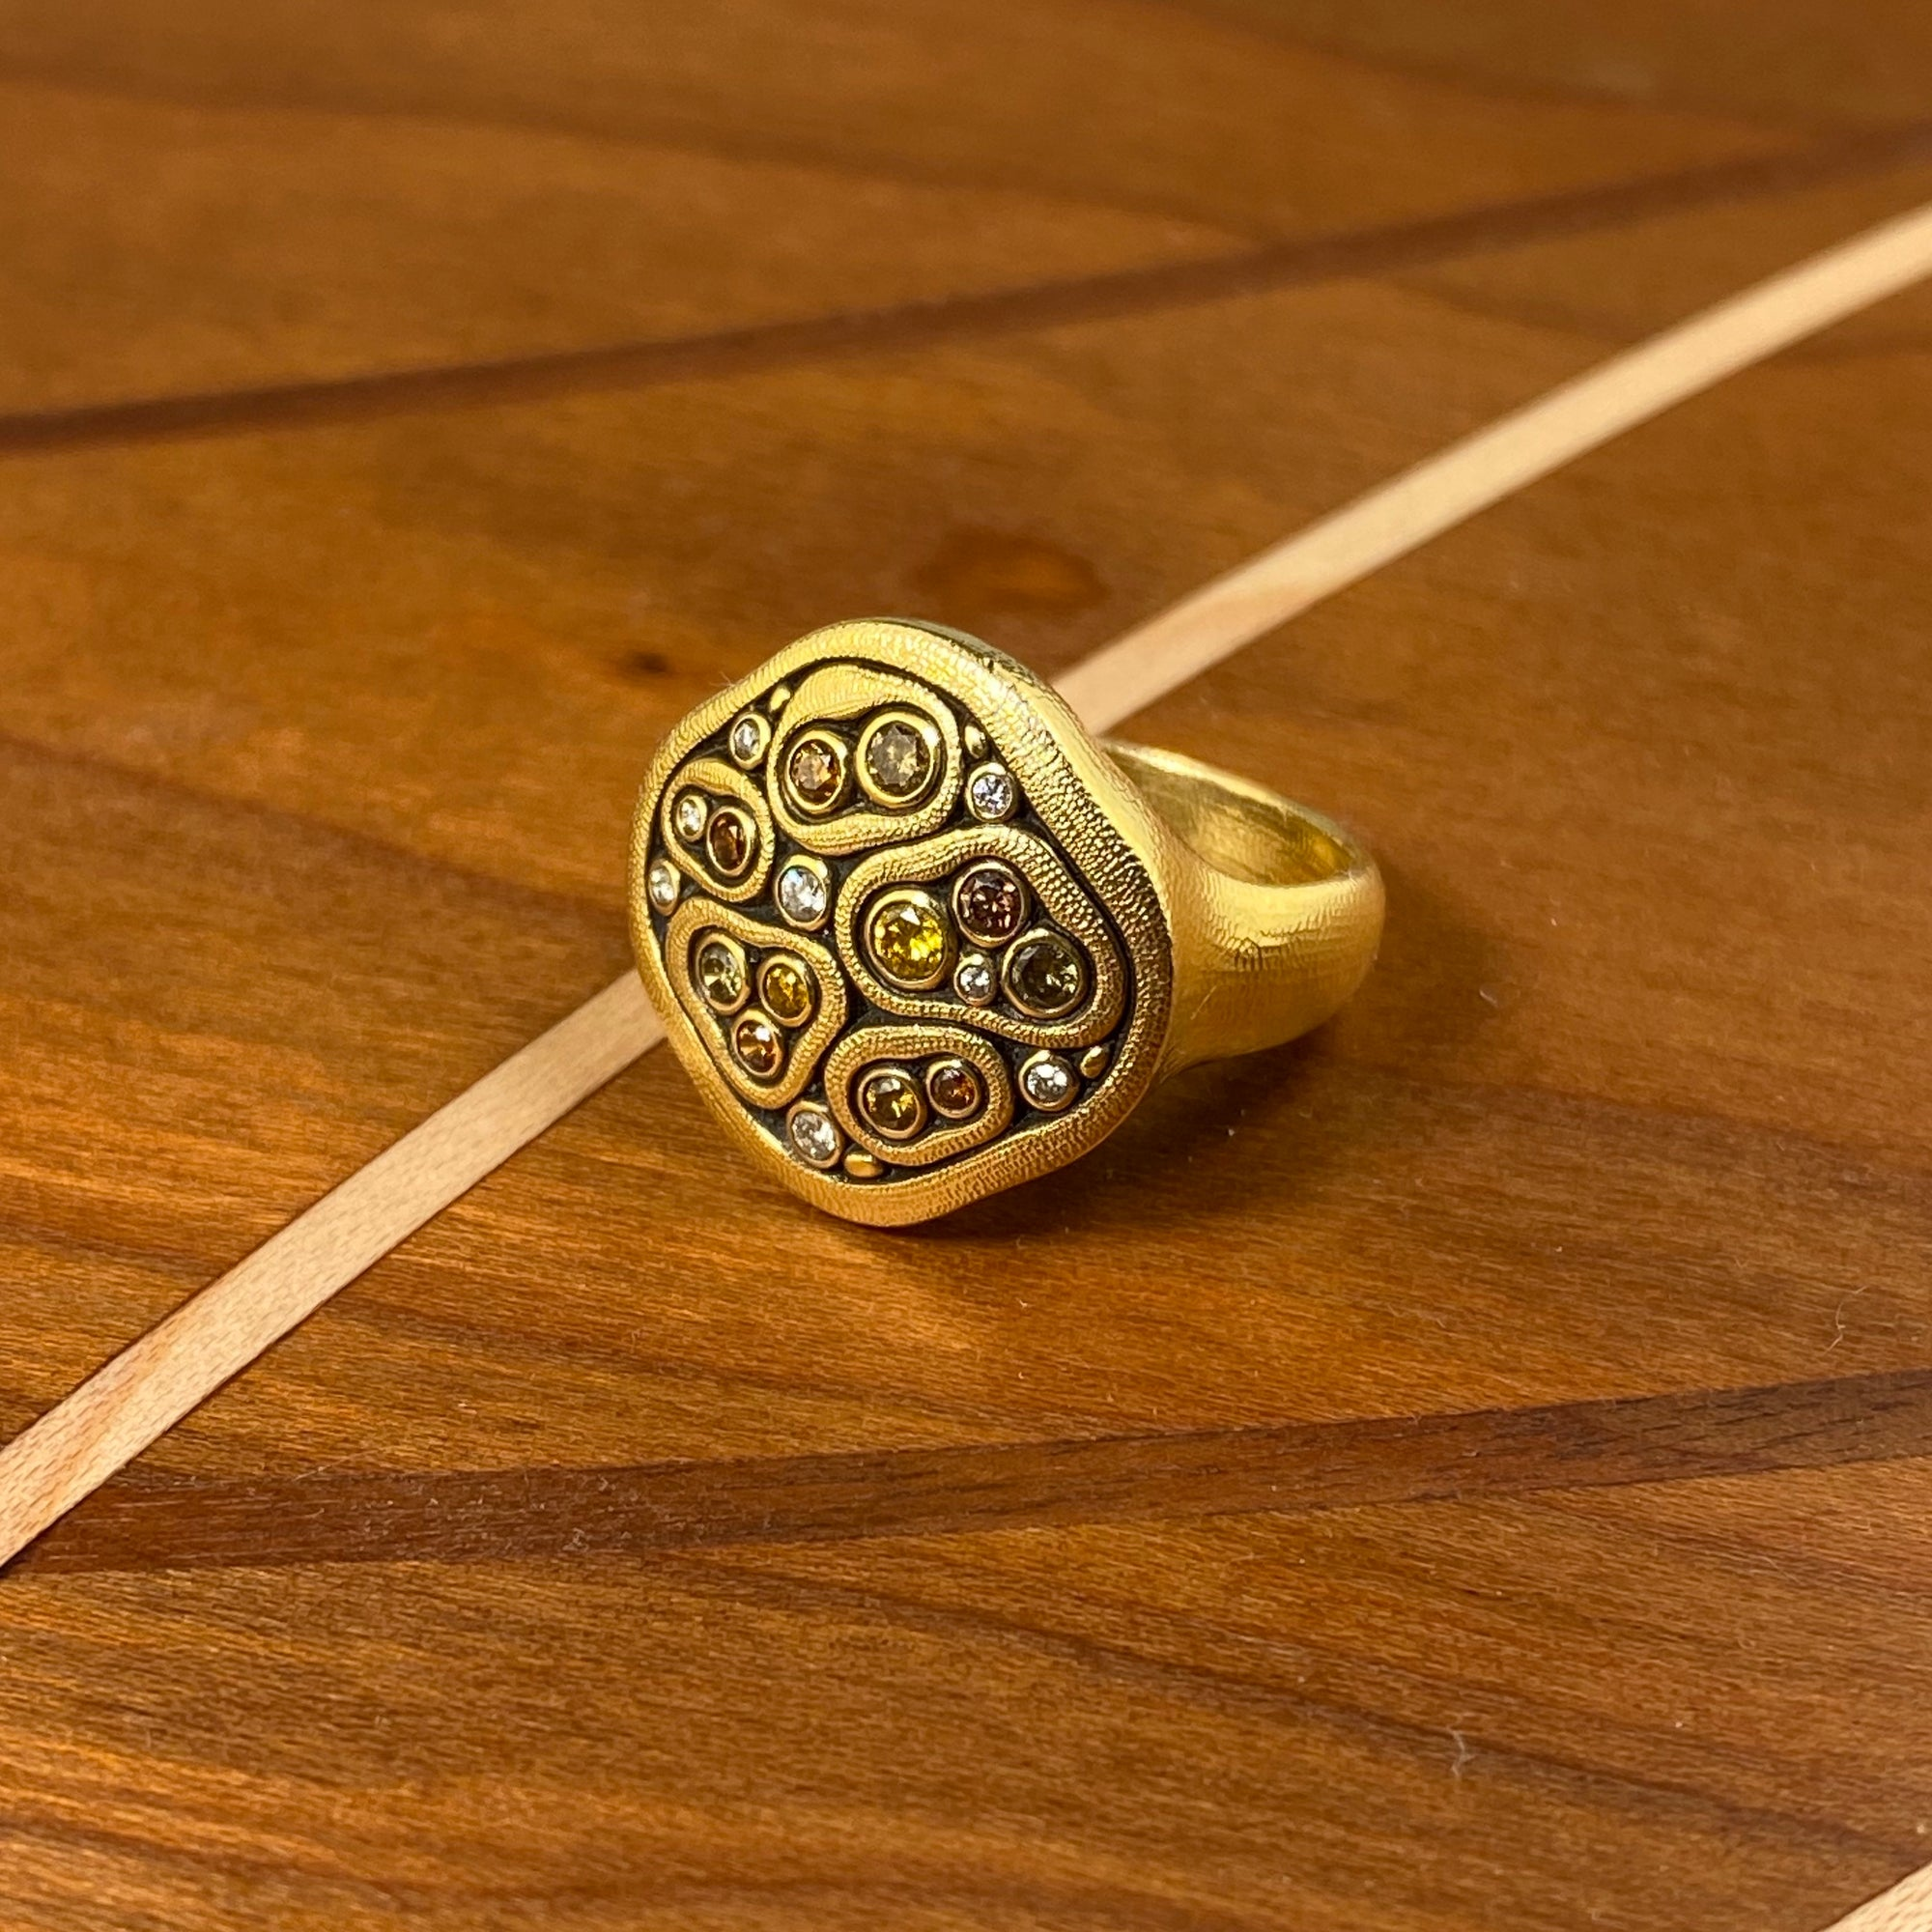 Swirling Water Ring in Gold with Natural Color Diamonds - Heart of the Home PA